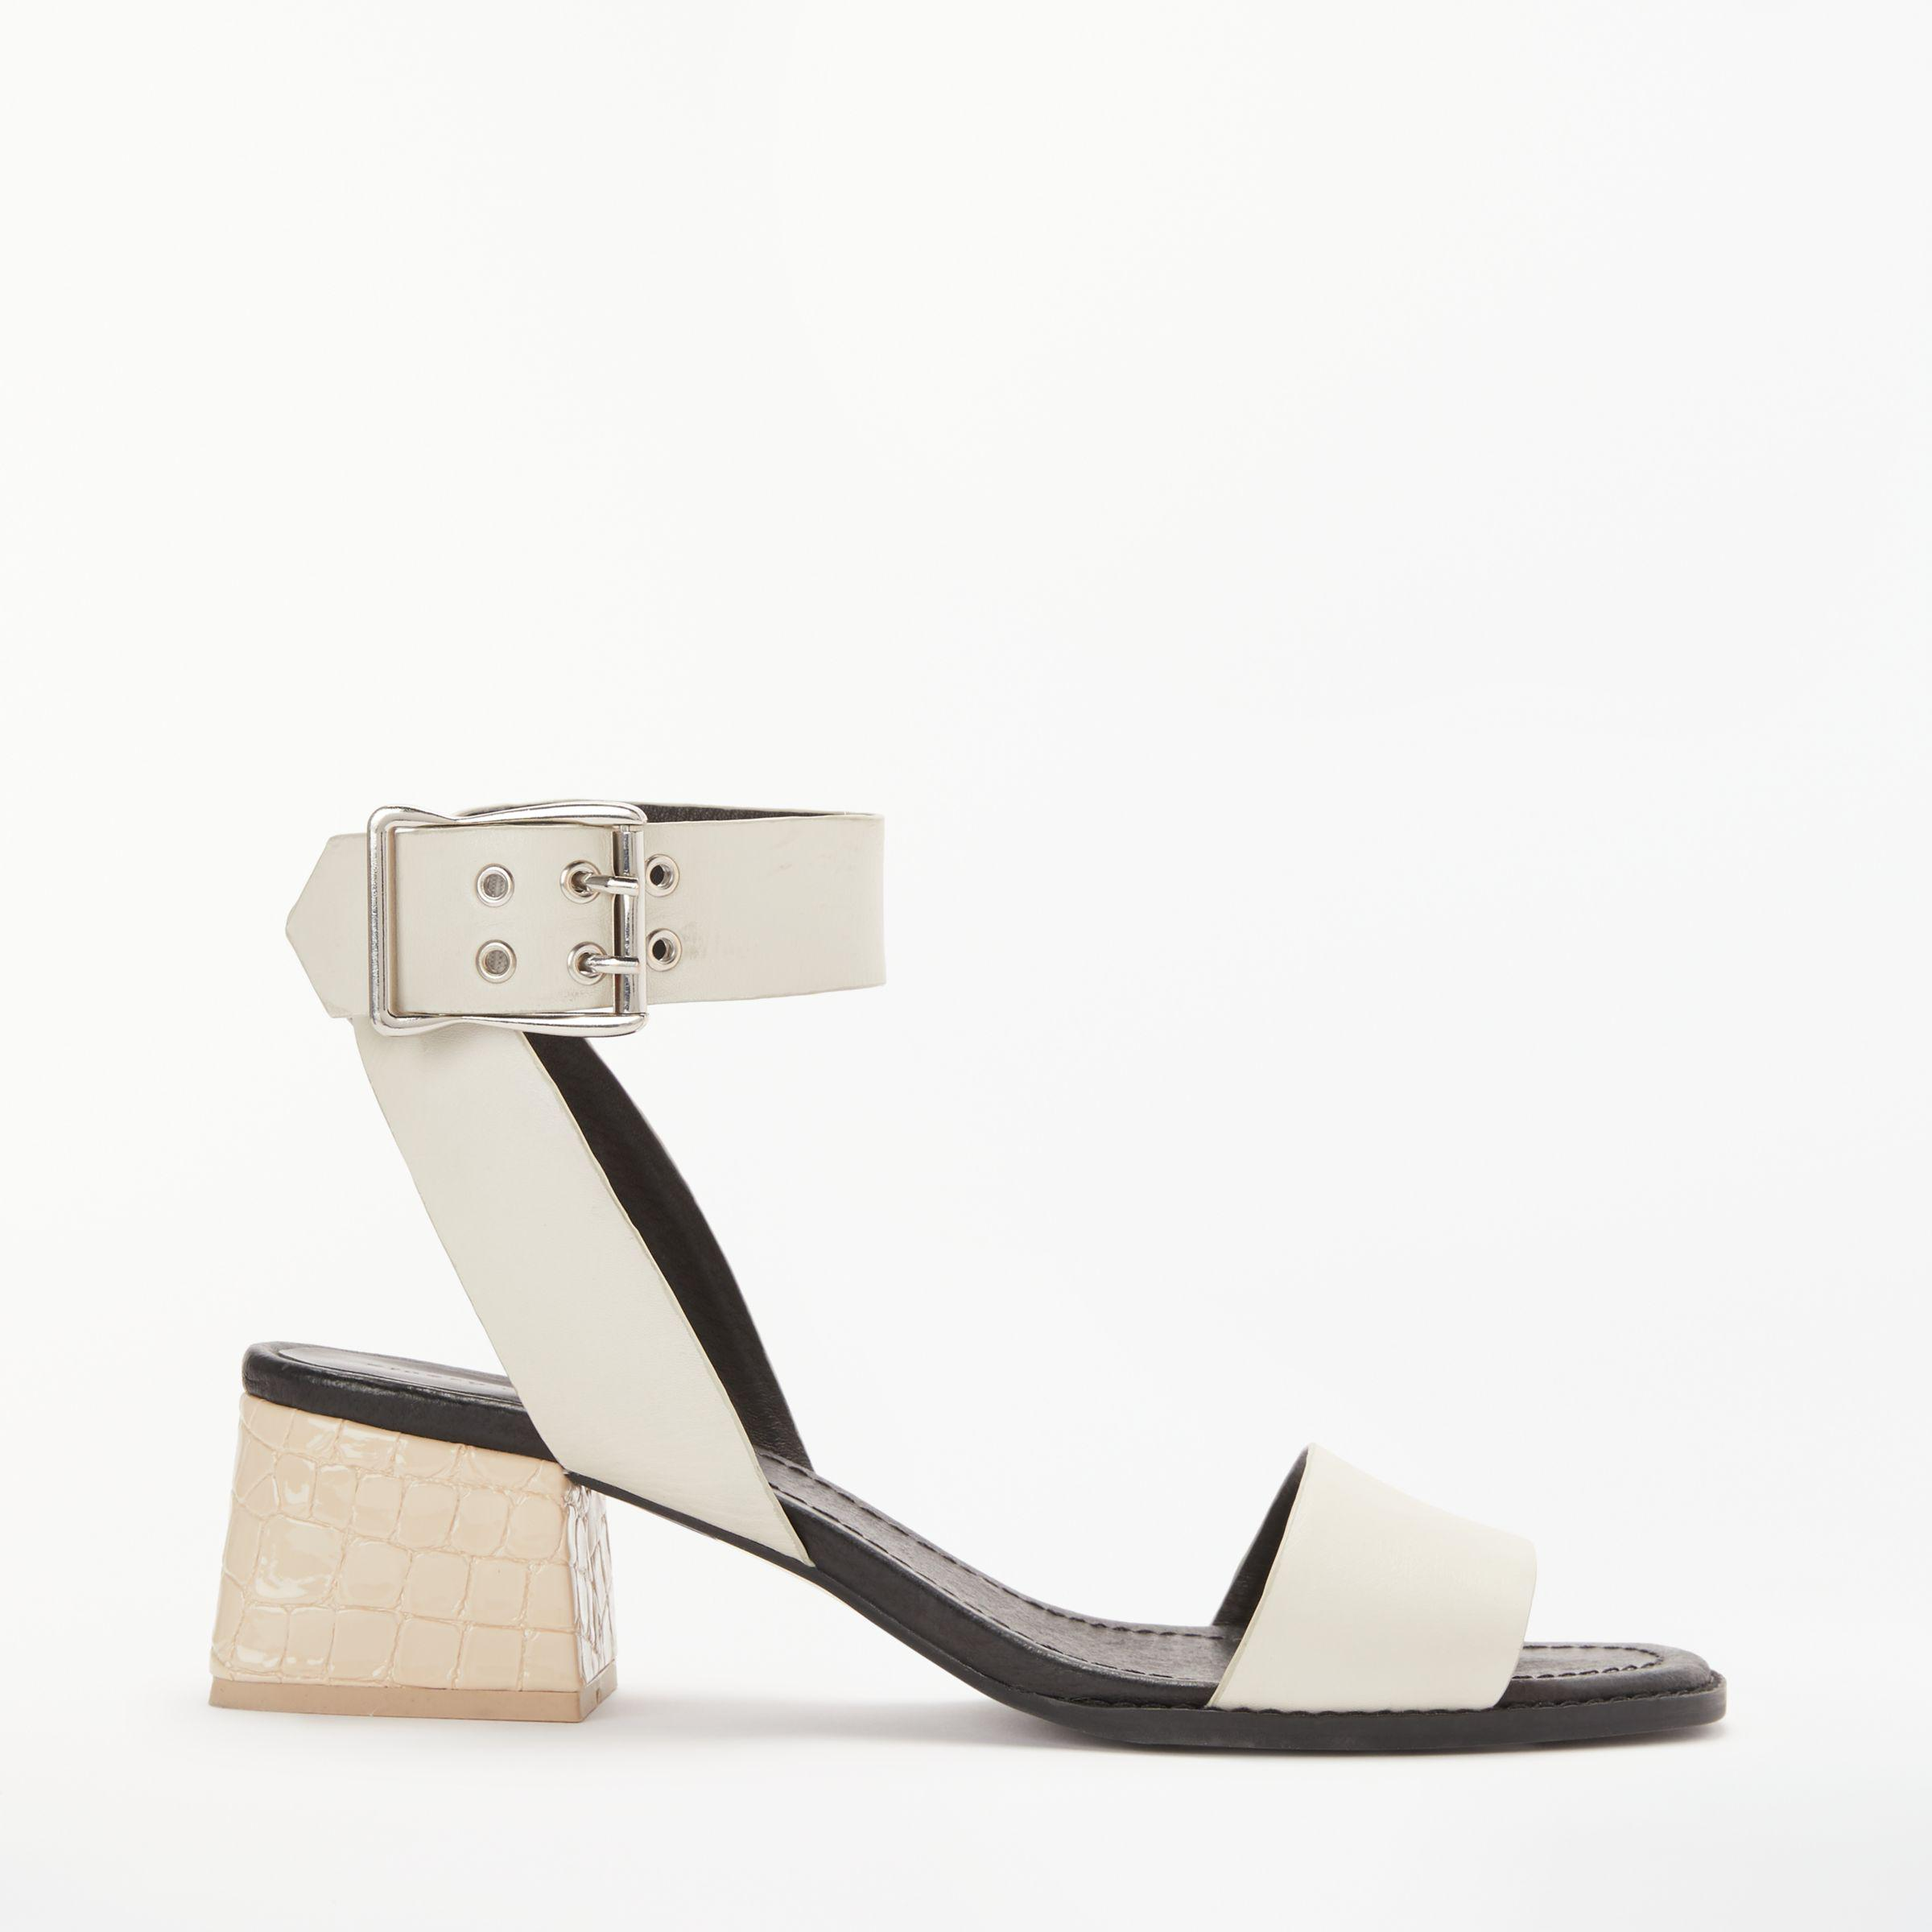 Howling White Leather Ankle Strap Sandal Finery SWbFD